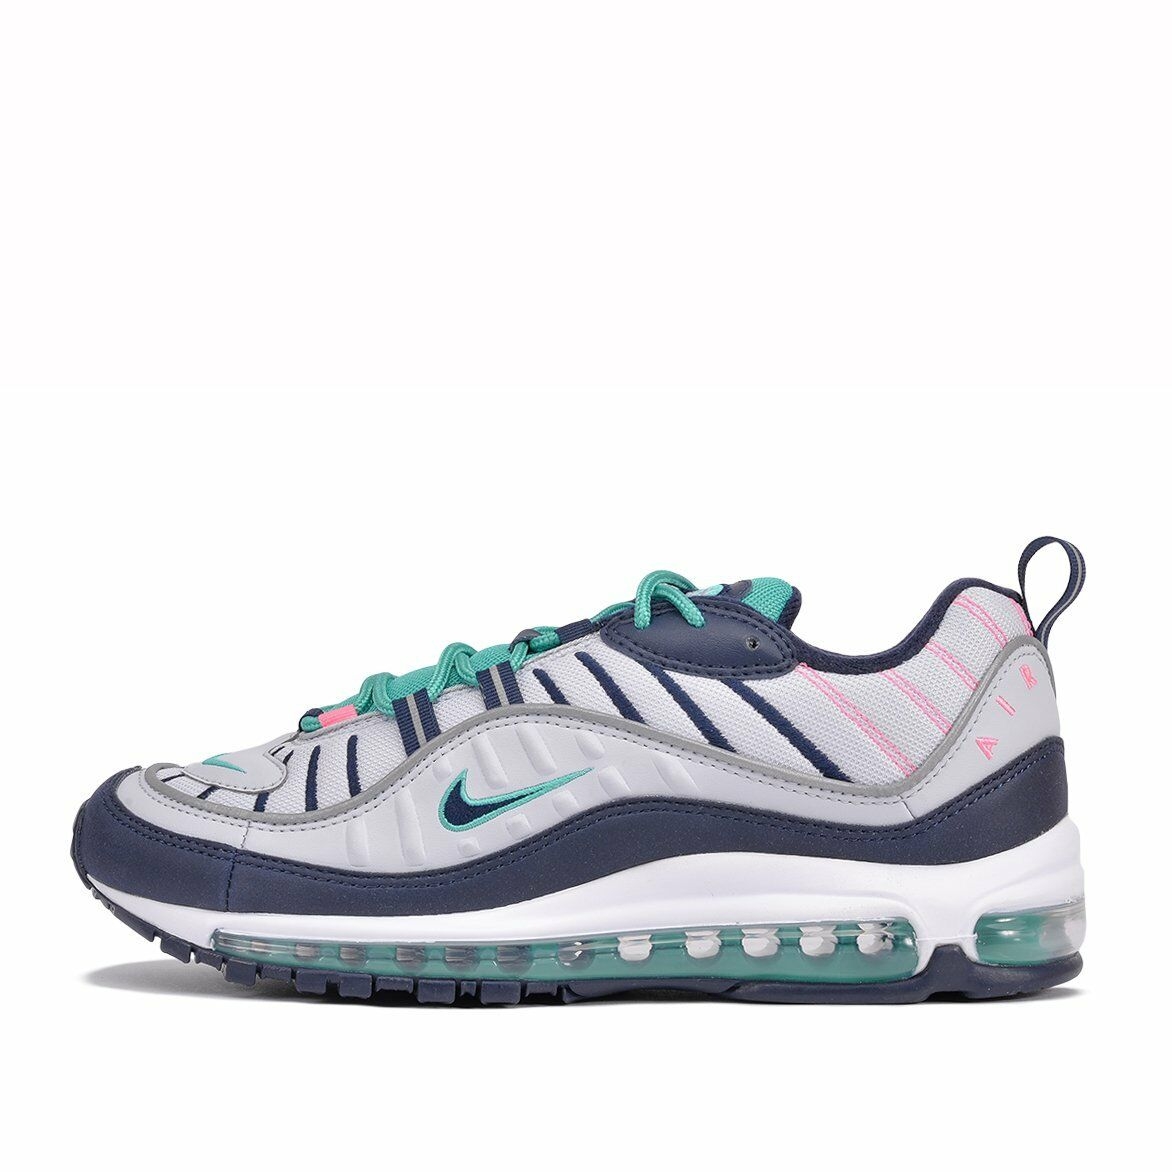 Nike air max 97 south beach ondata di puro platino ossidiana 640744-005 sz9